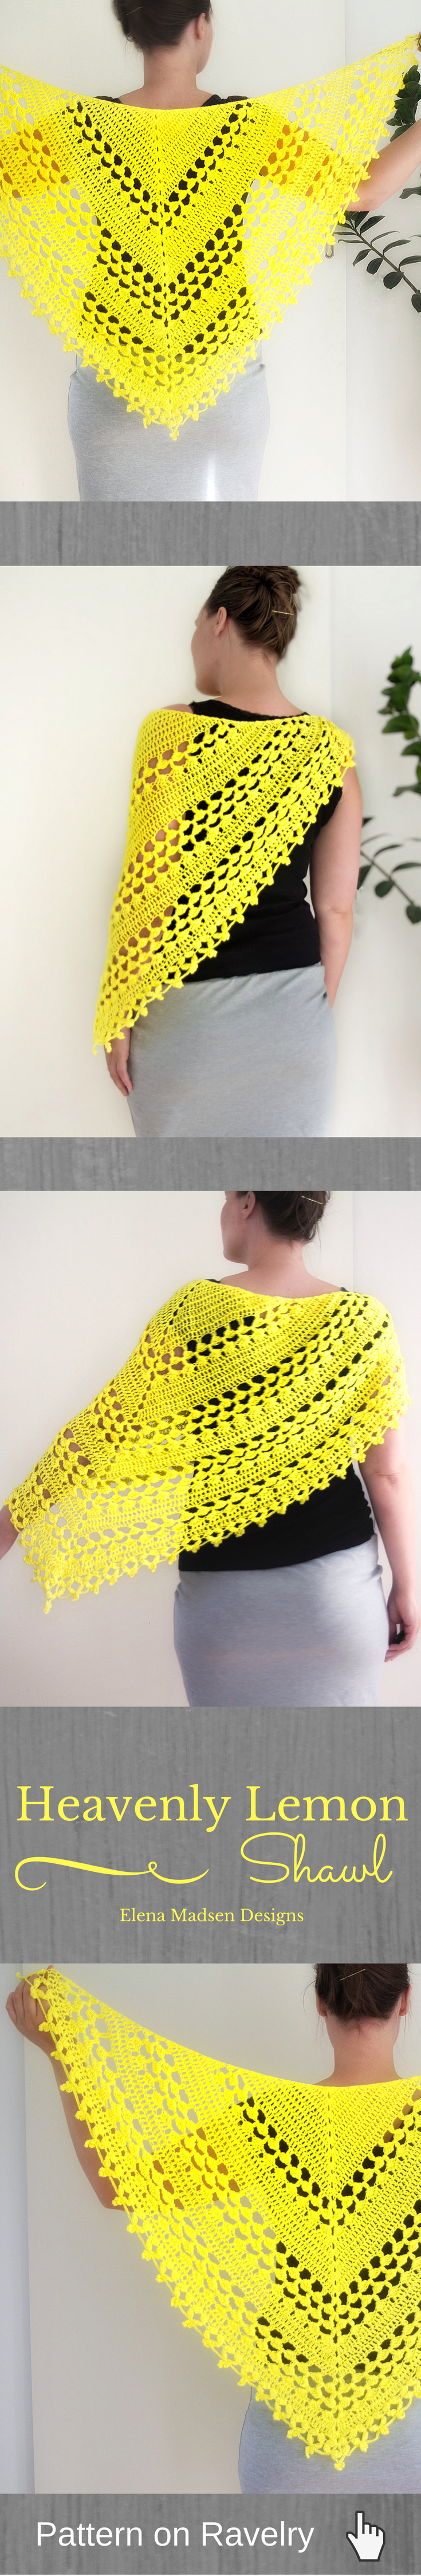 Heavenly lemon pattern by elena madsen crochet shawl patterns crochet shawl pattern easy to make lovely triangle shawl with the perfect lacy look bankloansurffo Choice Image